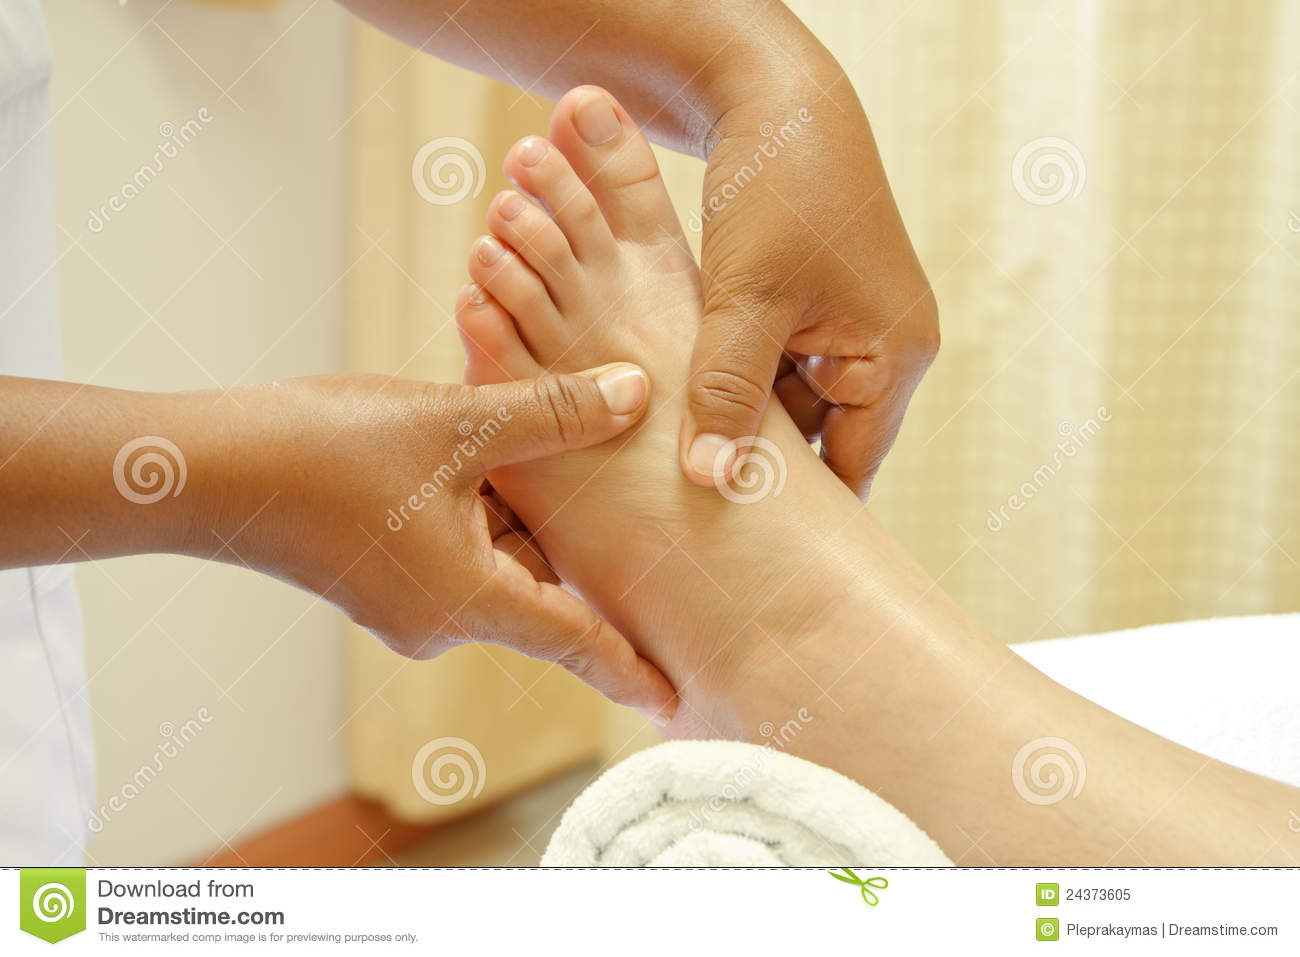 Classic Chinese Massage - How it all started About This Form involving Healing reflexology-foot-massage-spa-foot-treatment-24373605